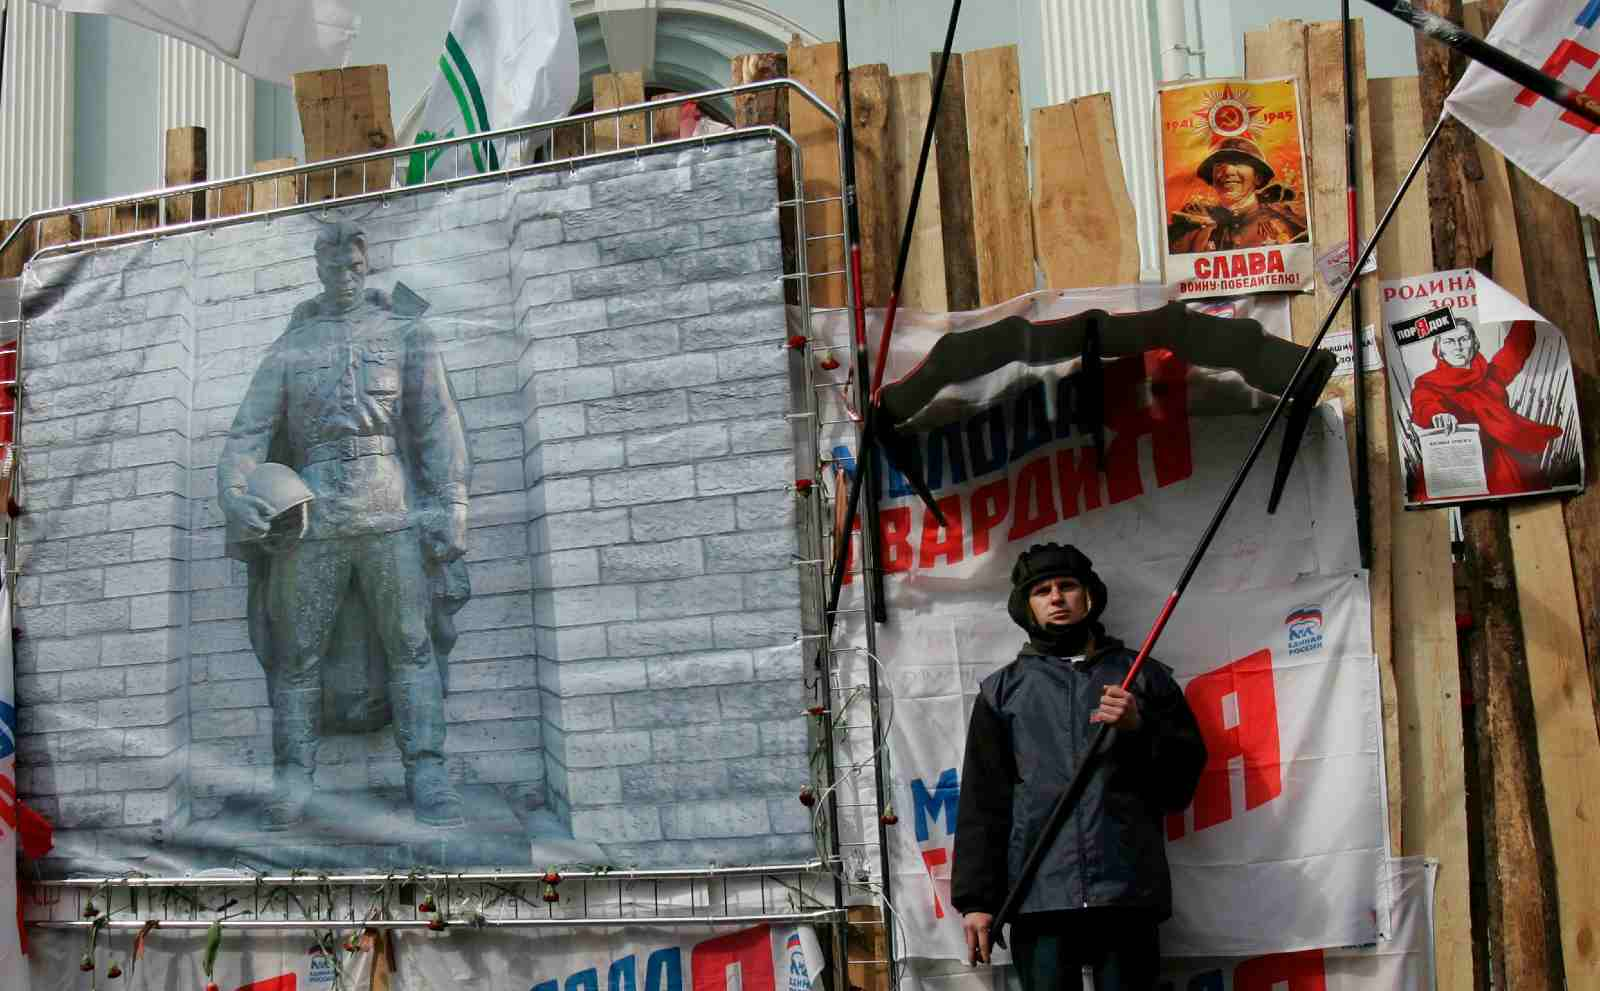 A protester holds a flag during a picket of Kremlin-loyal youth organisations in front of the Estonian embassy in Moscow May 3, 2007. The poster on the left shows the statue of a Red Army soldier, whose relocation in Tallinn has sparked recent tensions between Russian and its ex-Soviet neighbour.